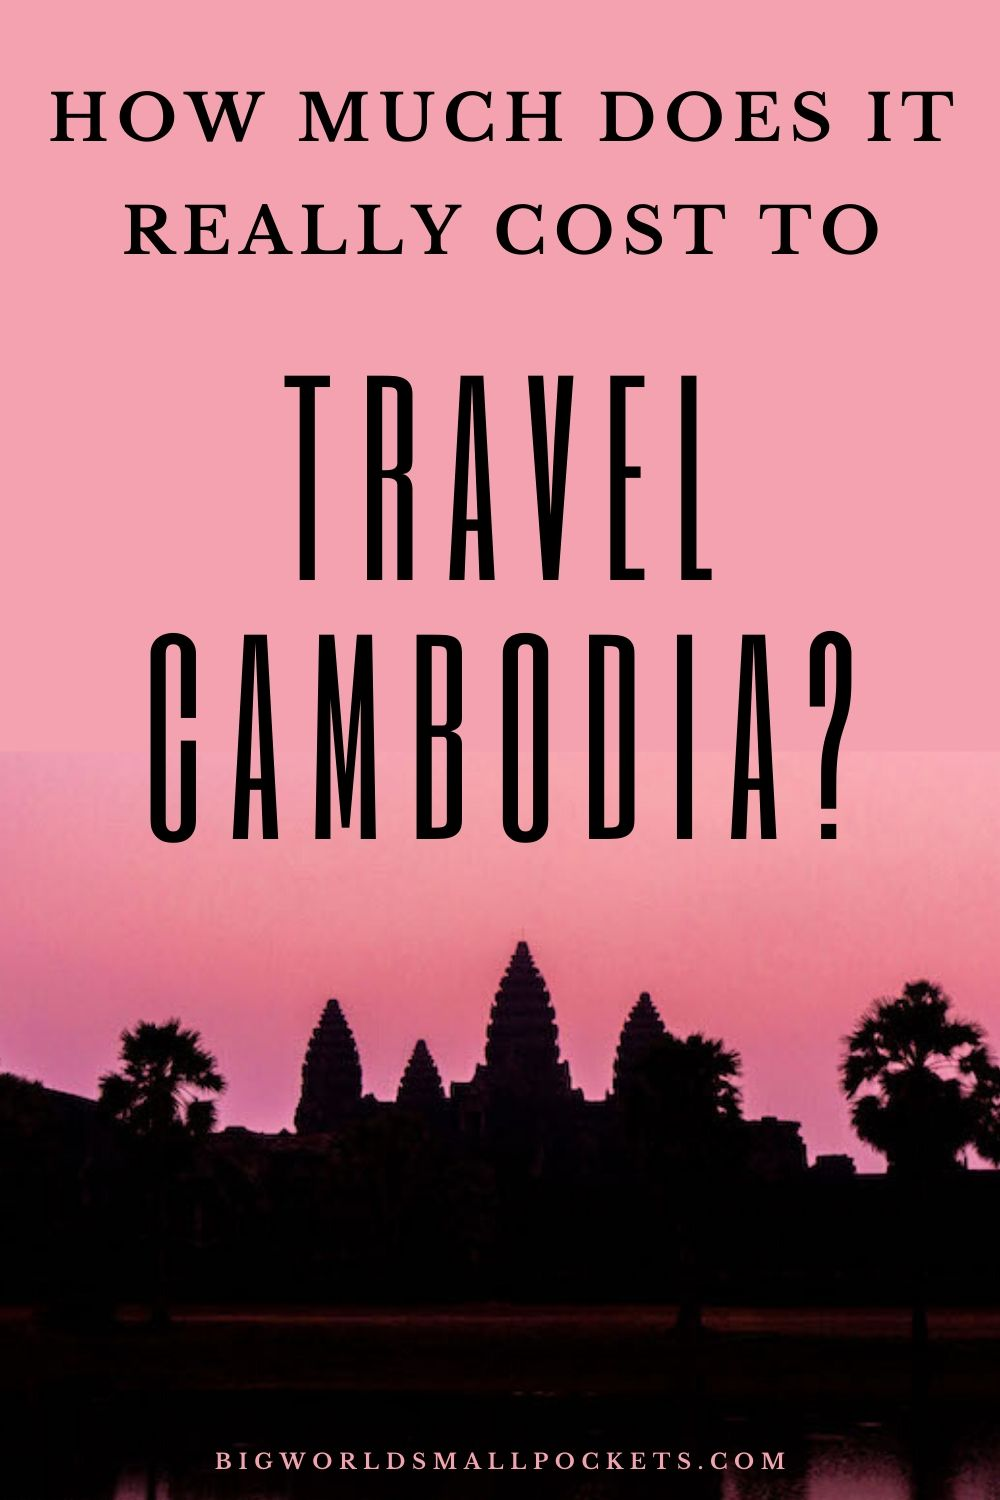 How Much Does It Really Cost to Travel in Cambodia?